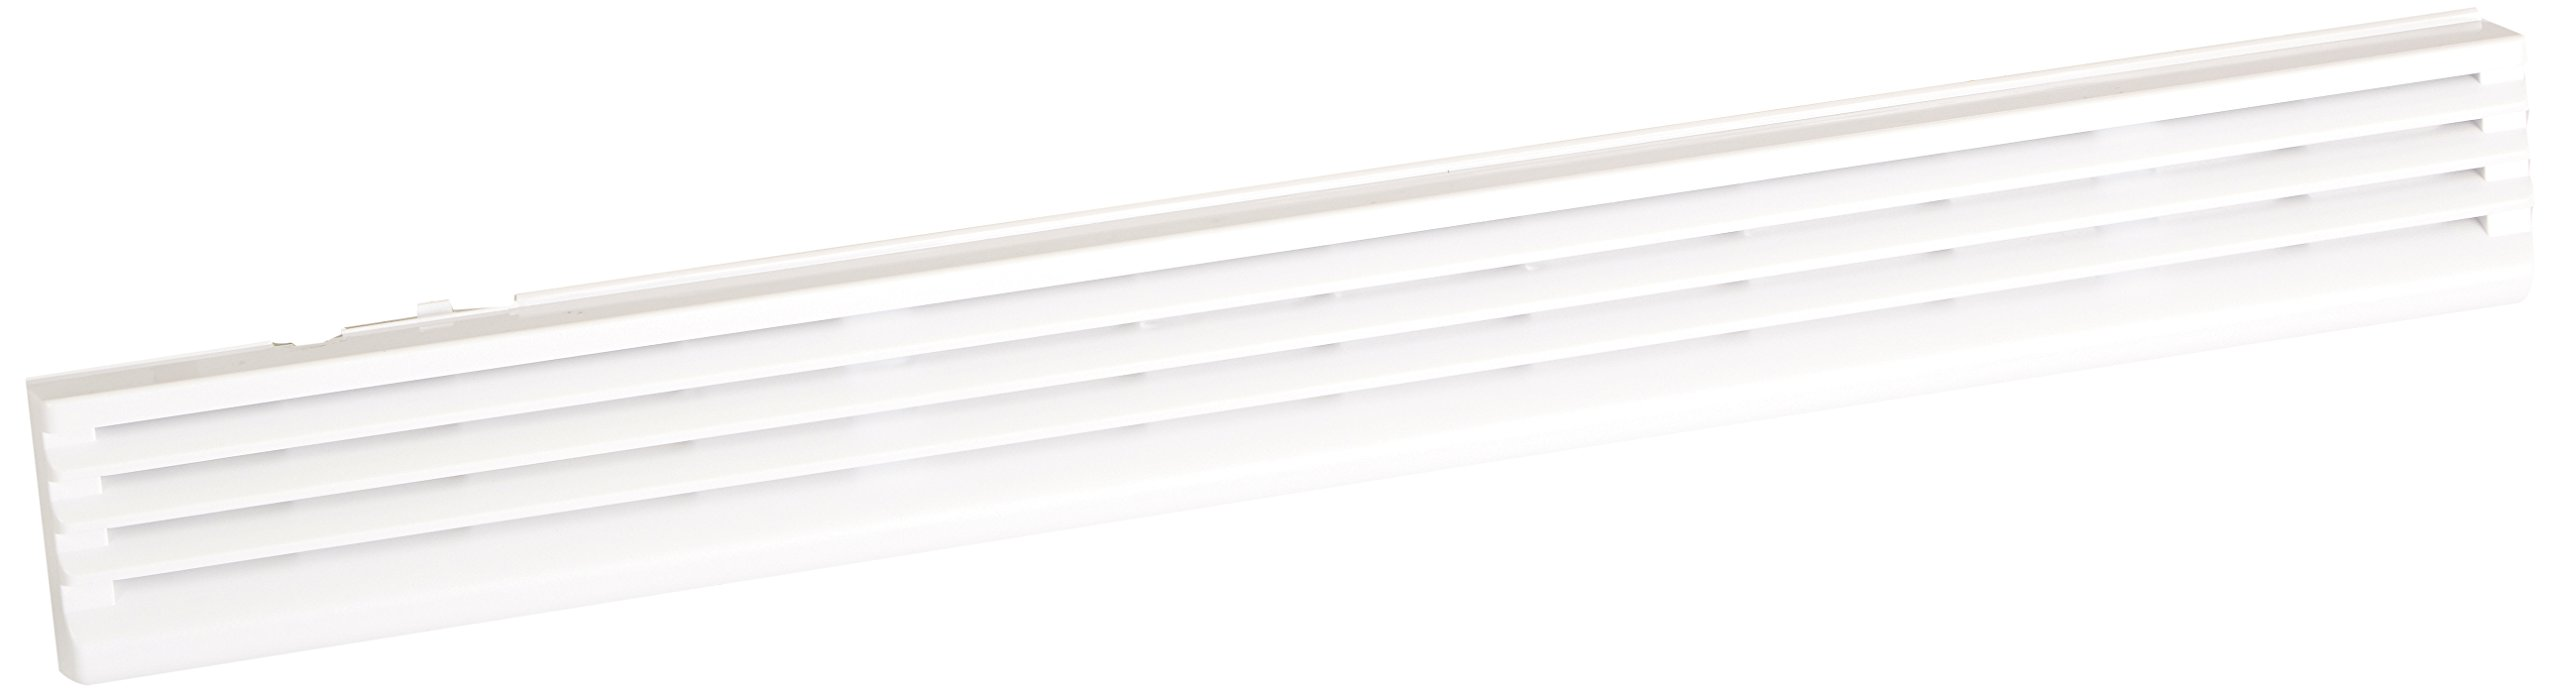 Whirlpool 8183948 Vent Grill